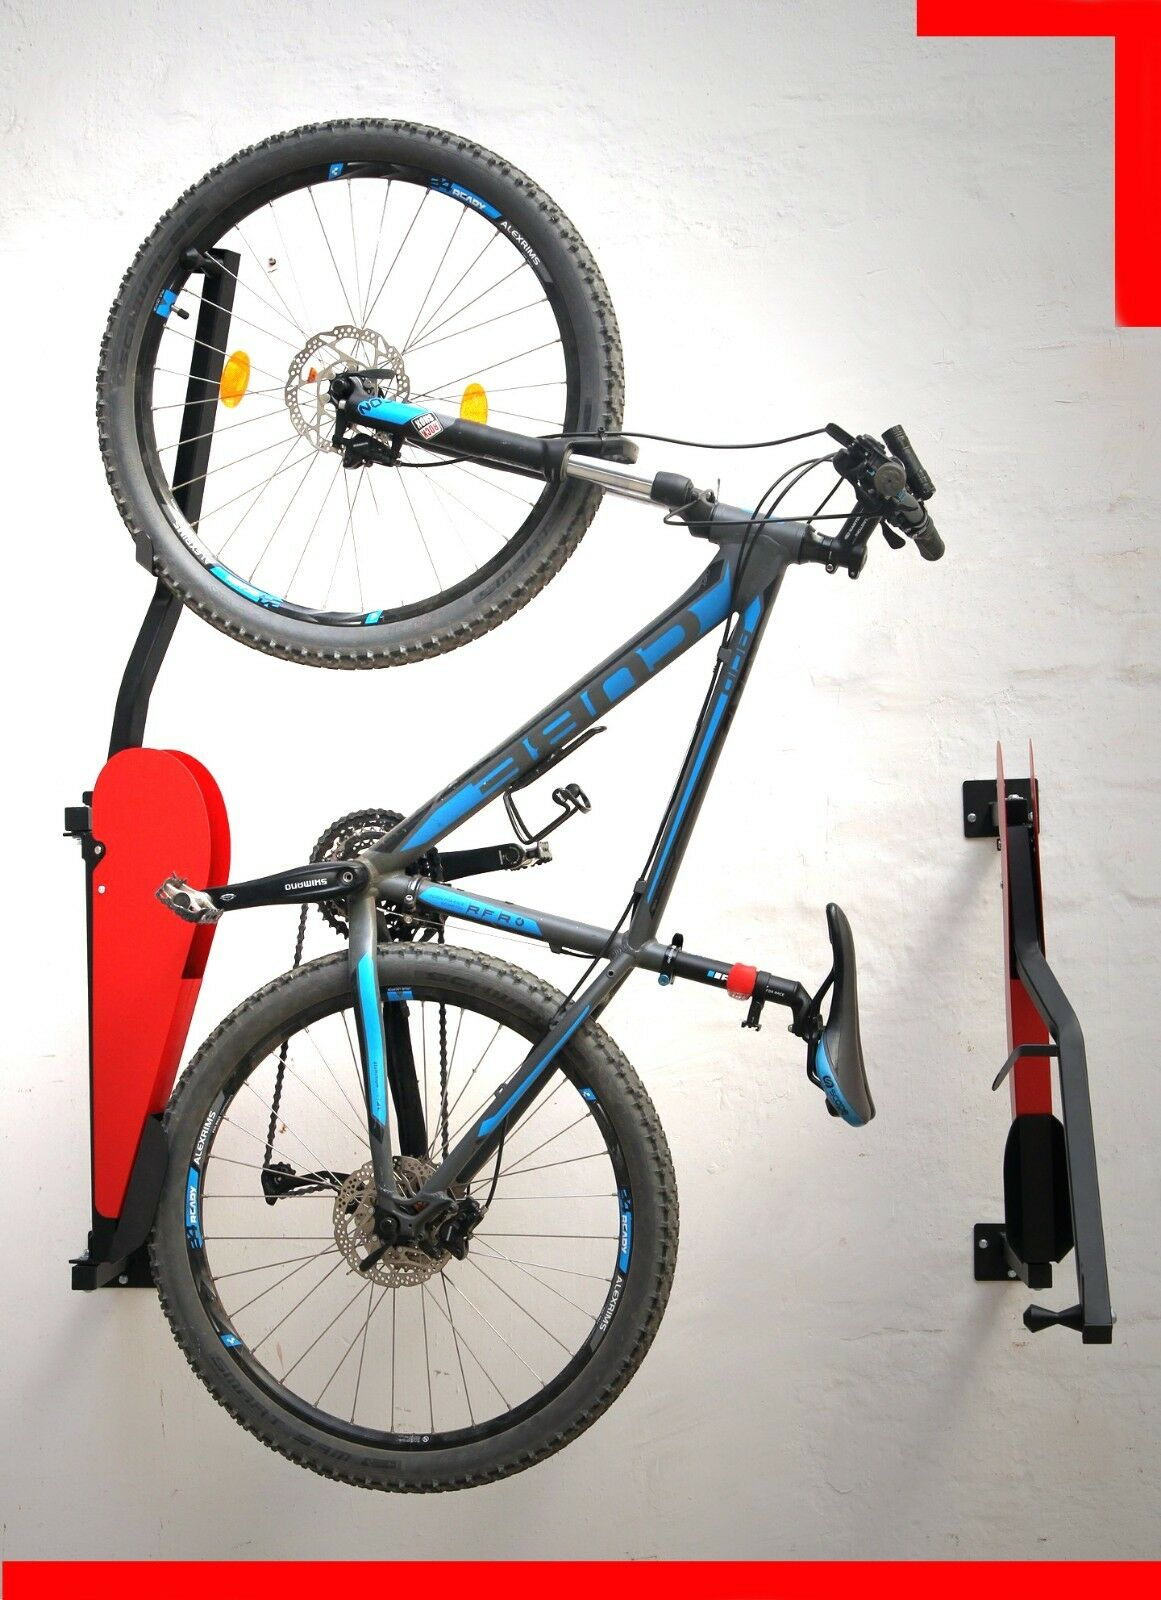 Electric Bicycle Wall Lift Pro -  Automatic Lifting and Hanging Wall Mount